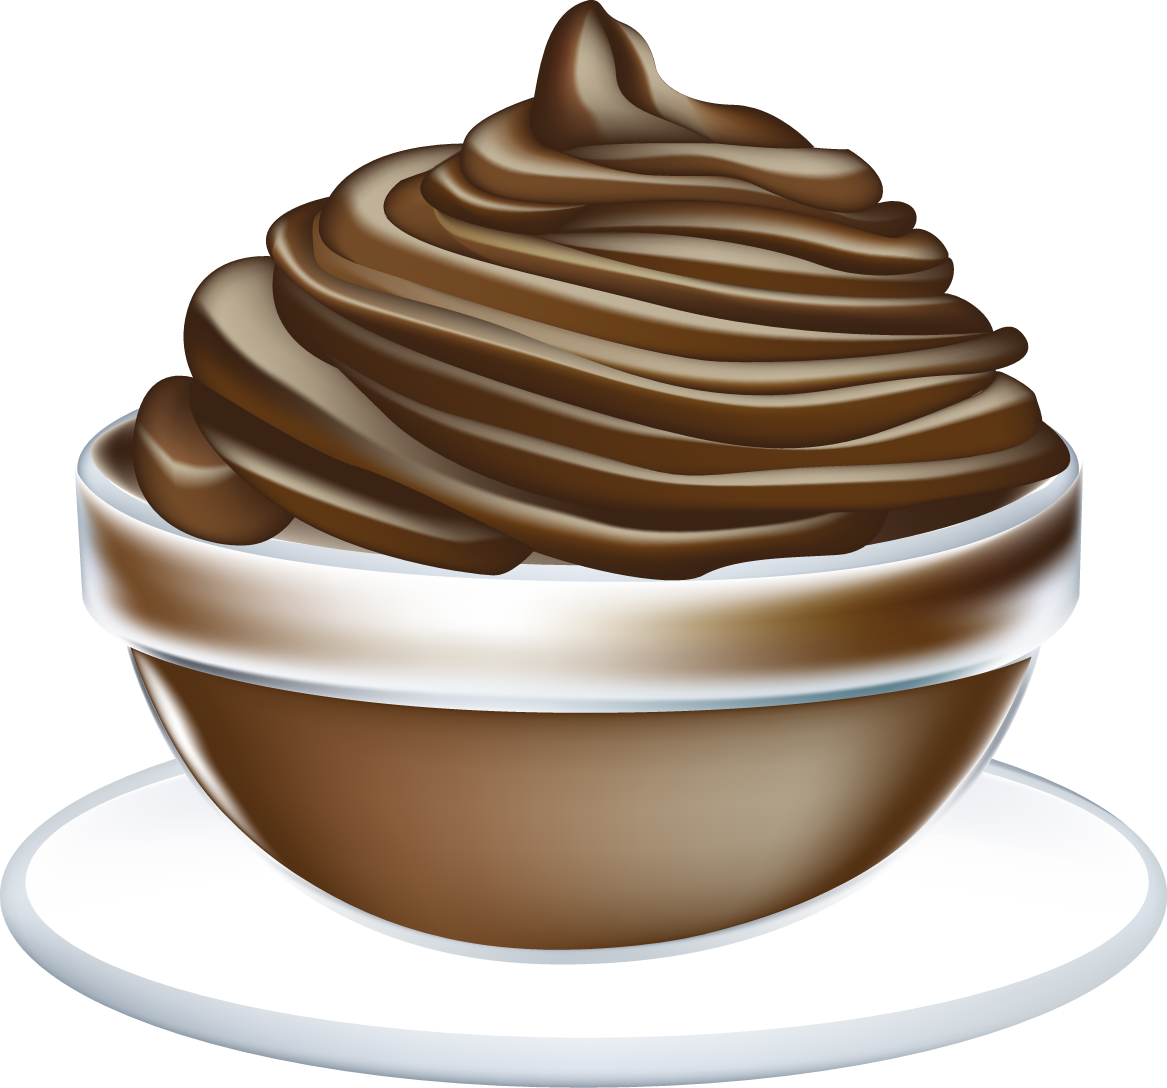 collection of images. Yogurt clipart pudding